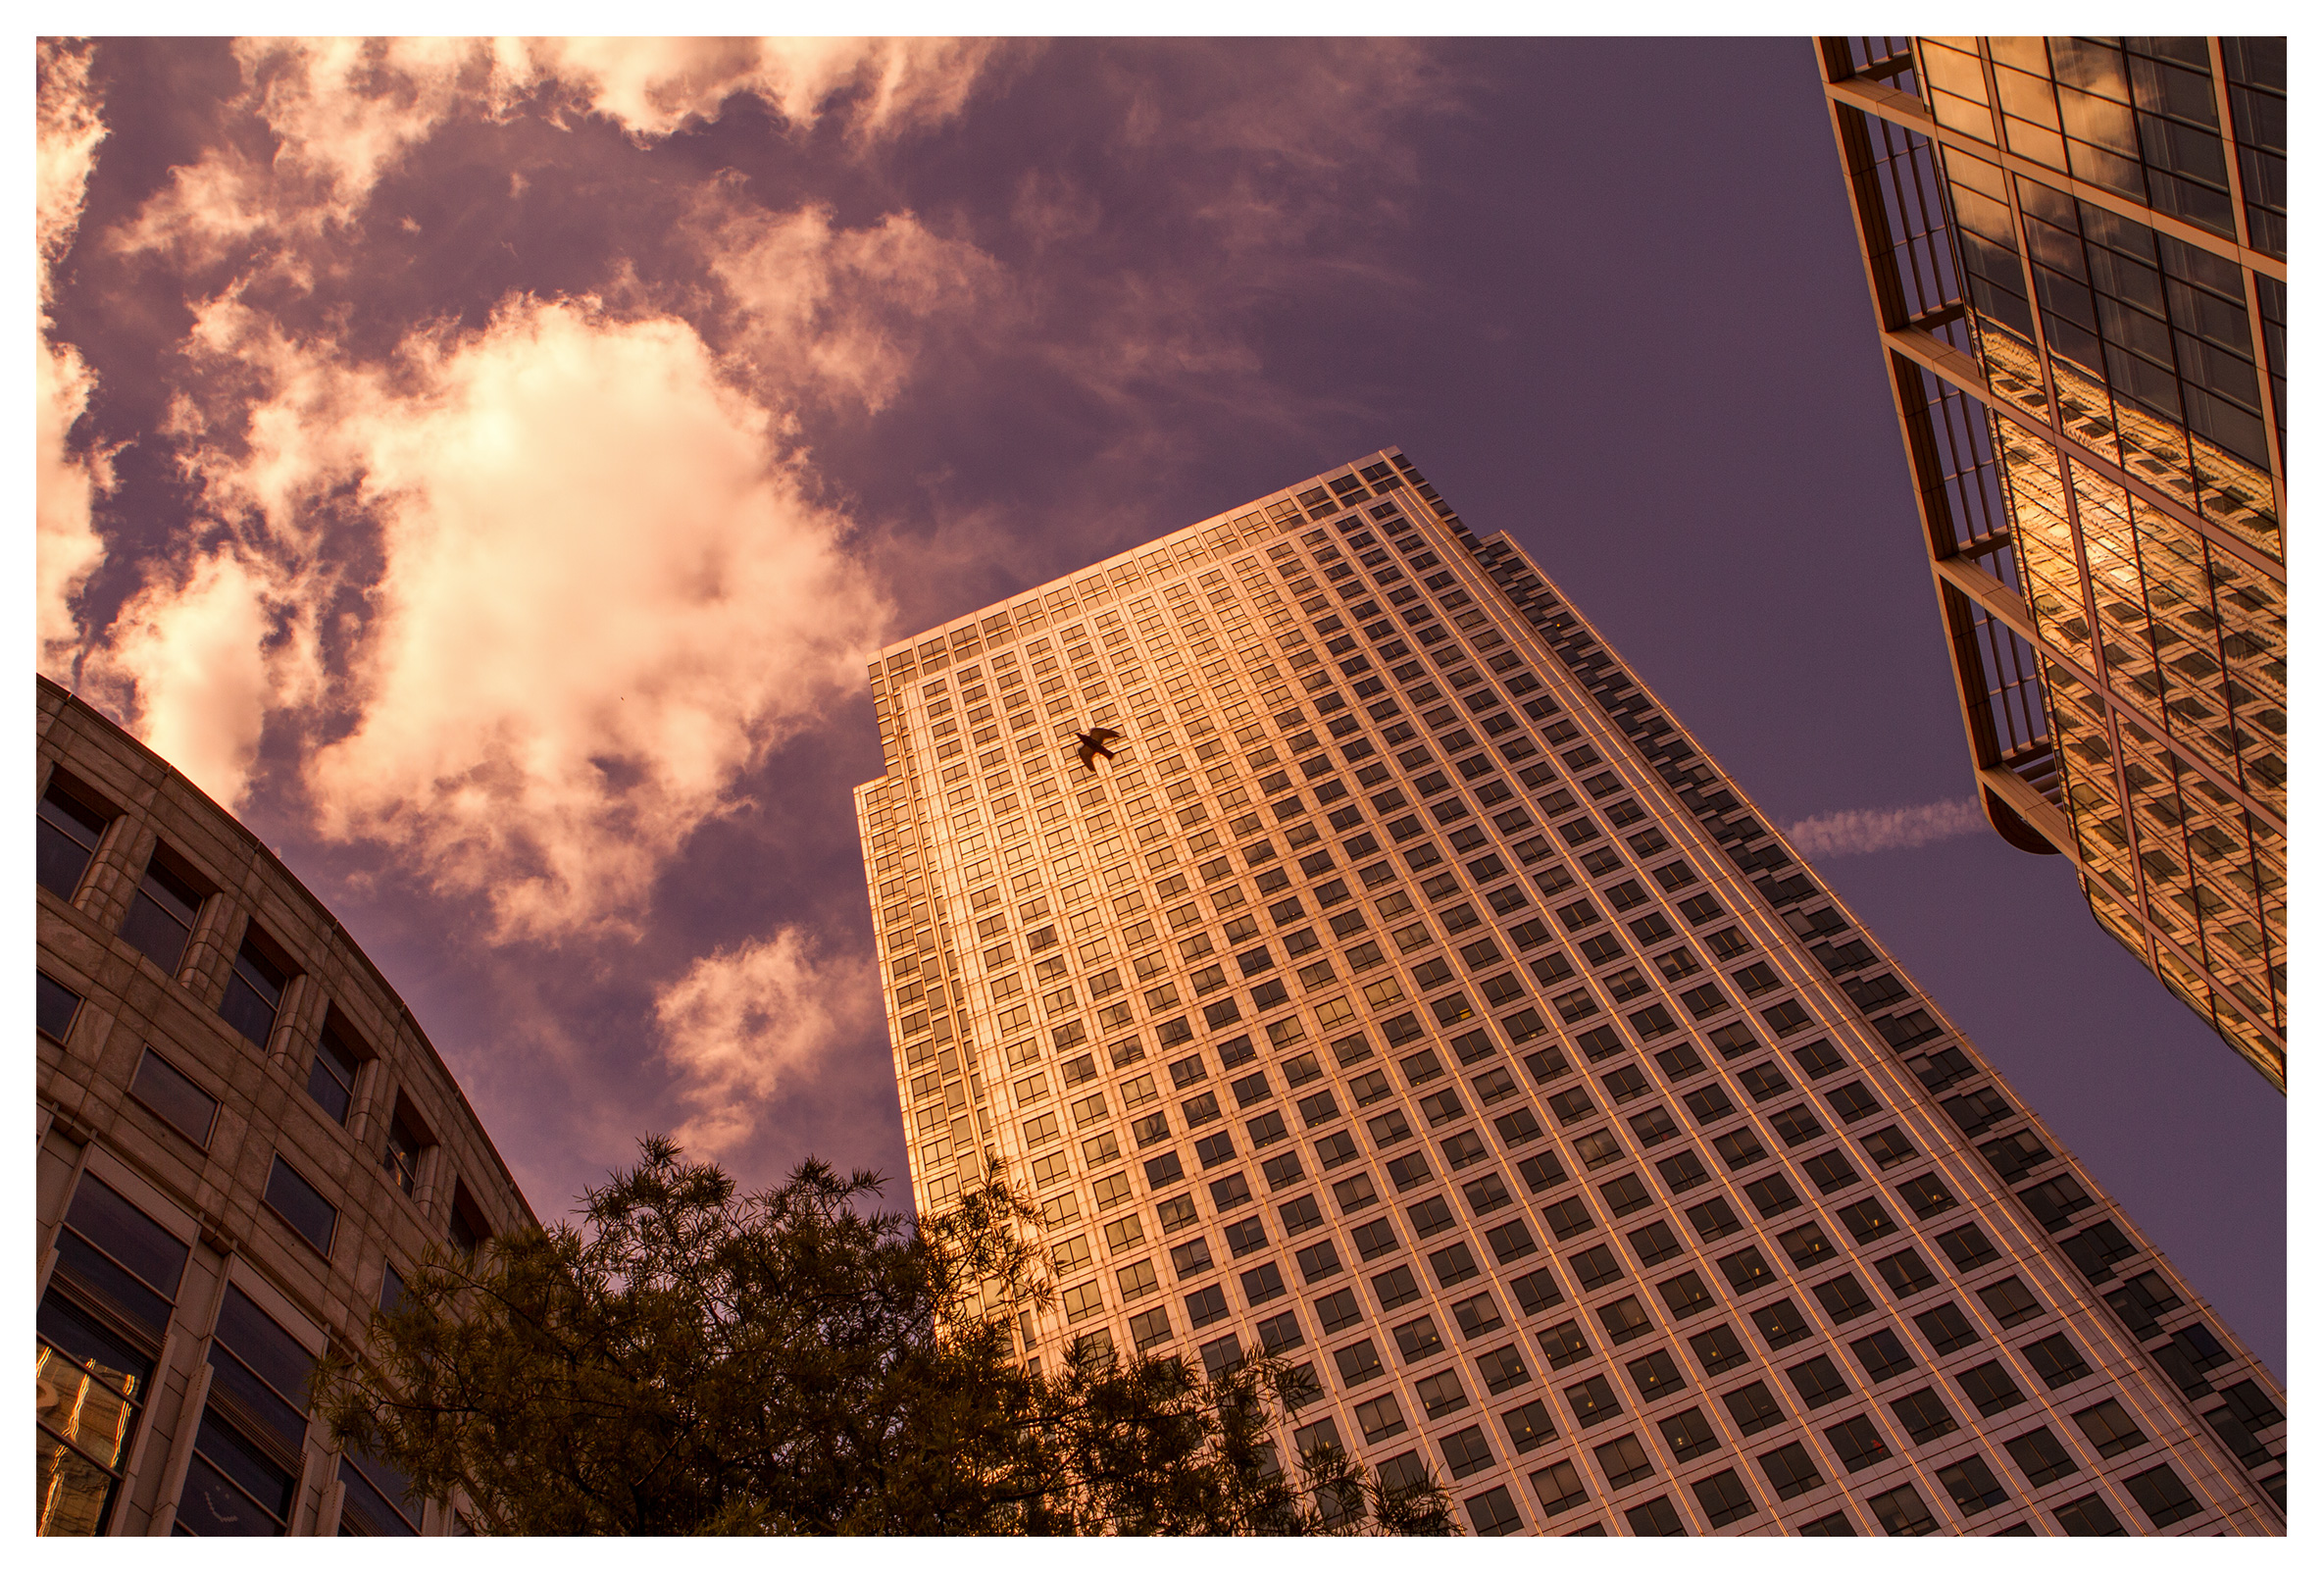 London Architecture, 1 Canada Square, sunset, Canary Wharf, London.